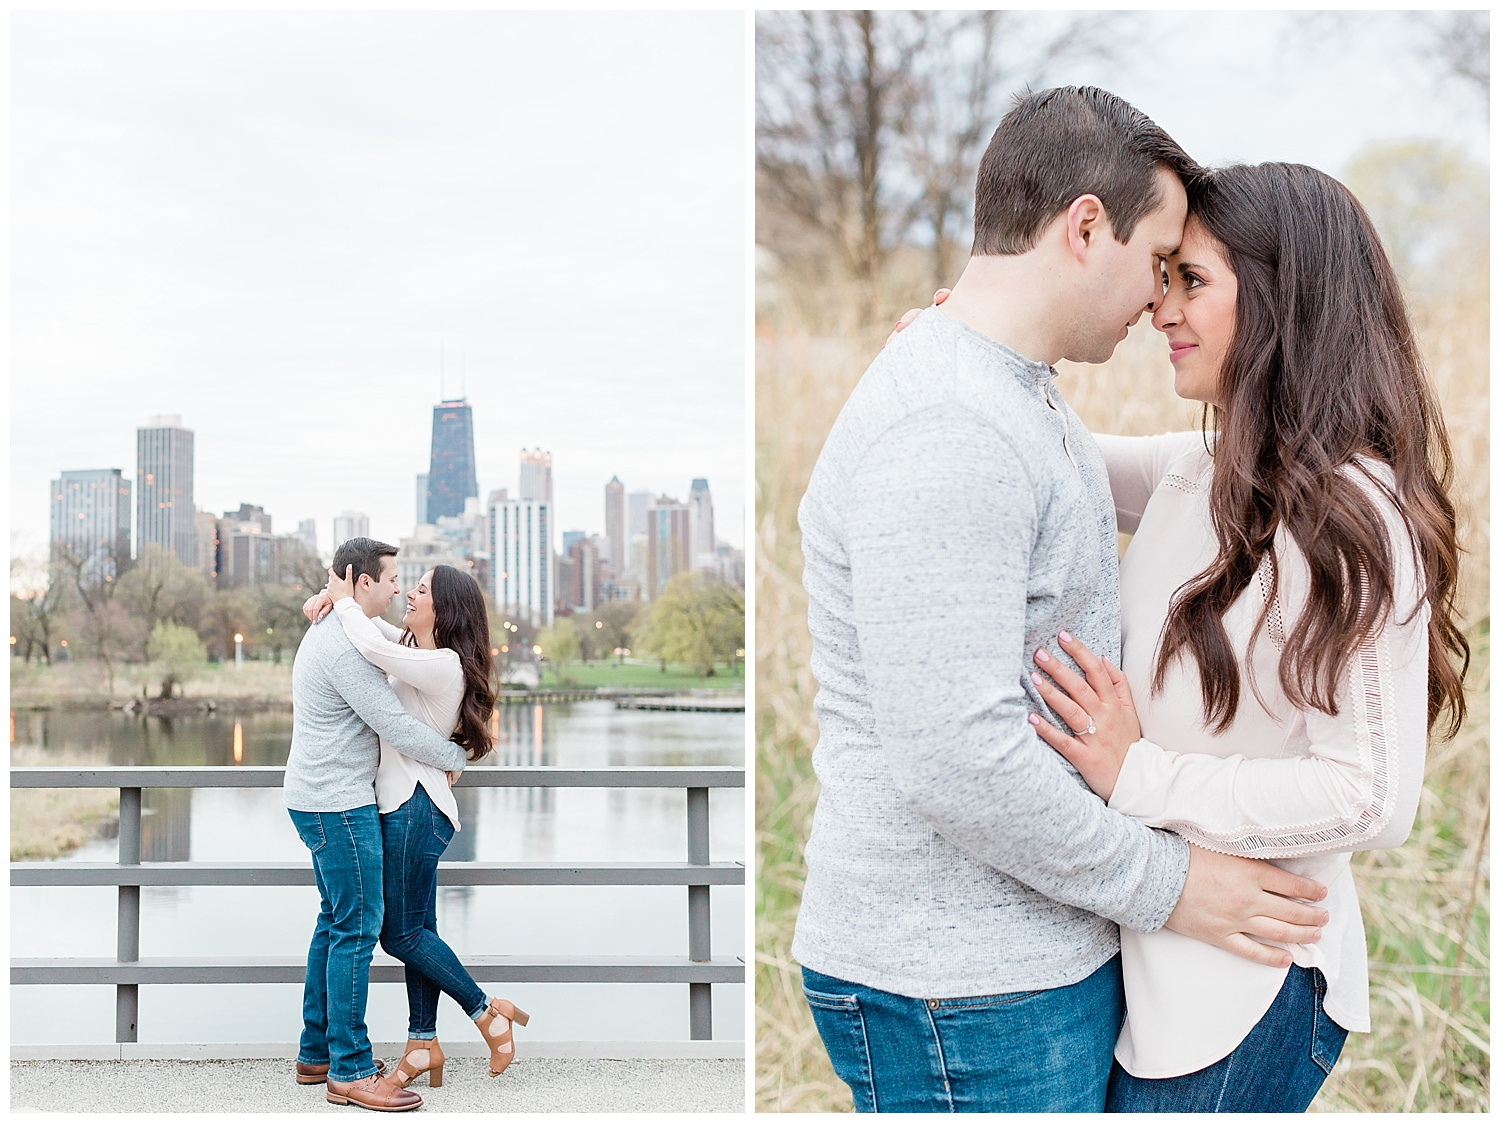 classic-downtown-chicago-engagement-session-kristen-cloyd-photography_0026.jpg